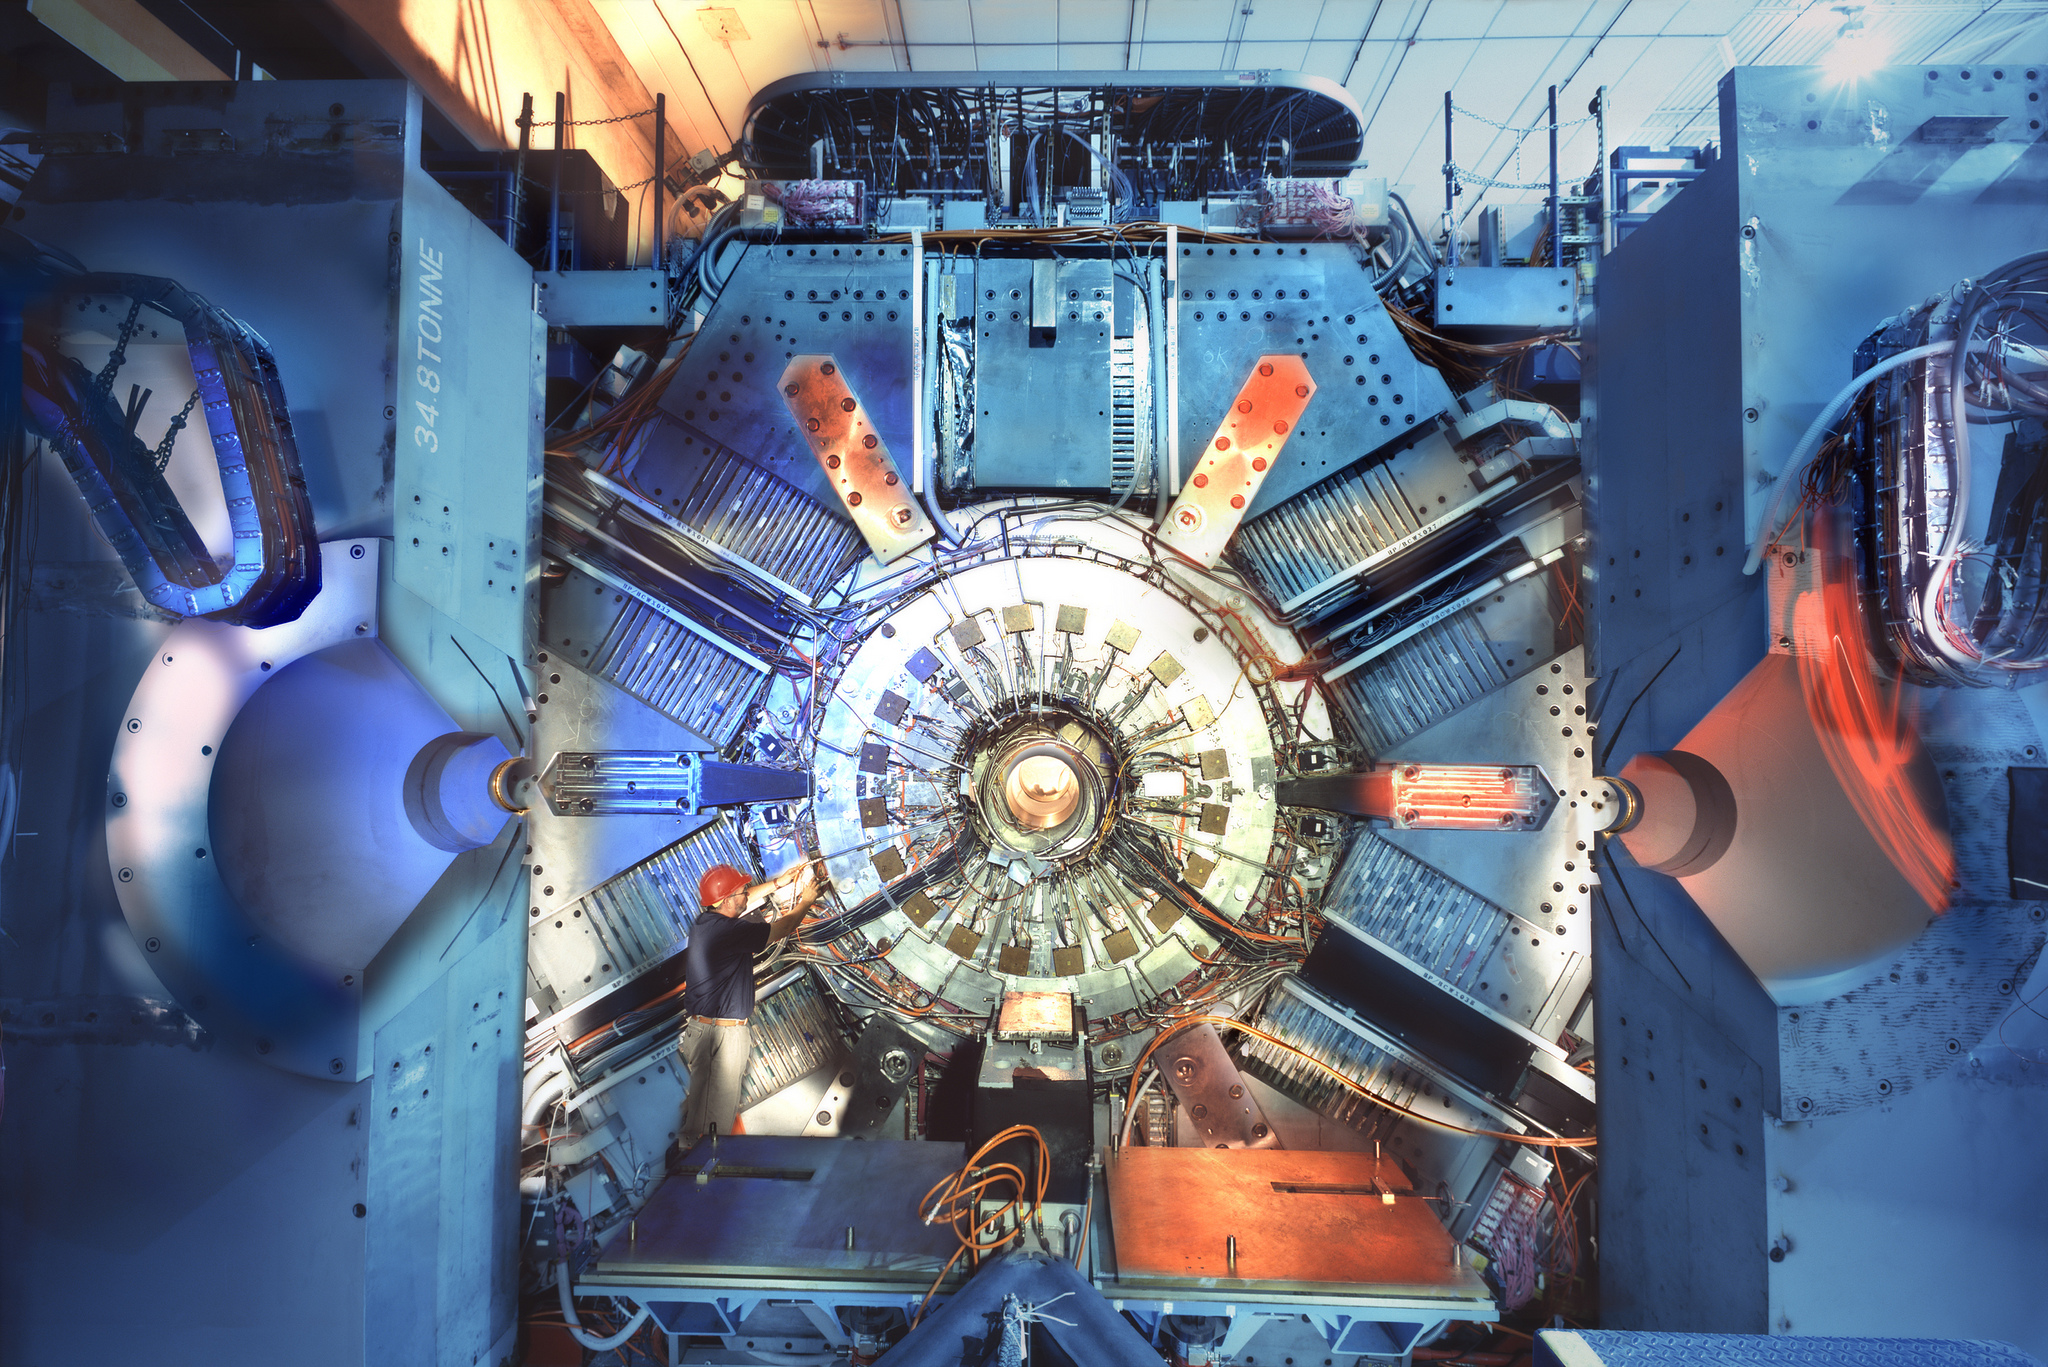 Photo - Data gathered from particle collider experiments using the BaBar detector at SLAC National Accelerator Laboratory, pictured here, were analyzed to search for traces of theorized dark matter particles known as dark photons. (Credit: SLAC National Accelerator Laboratory)